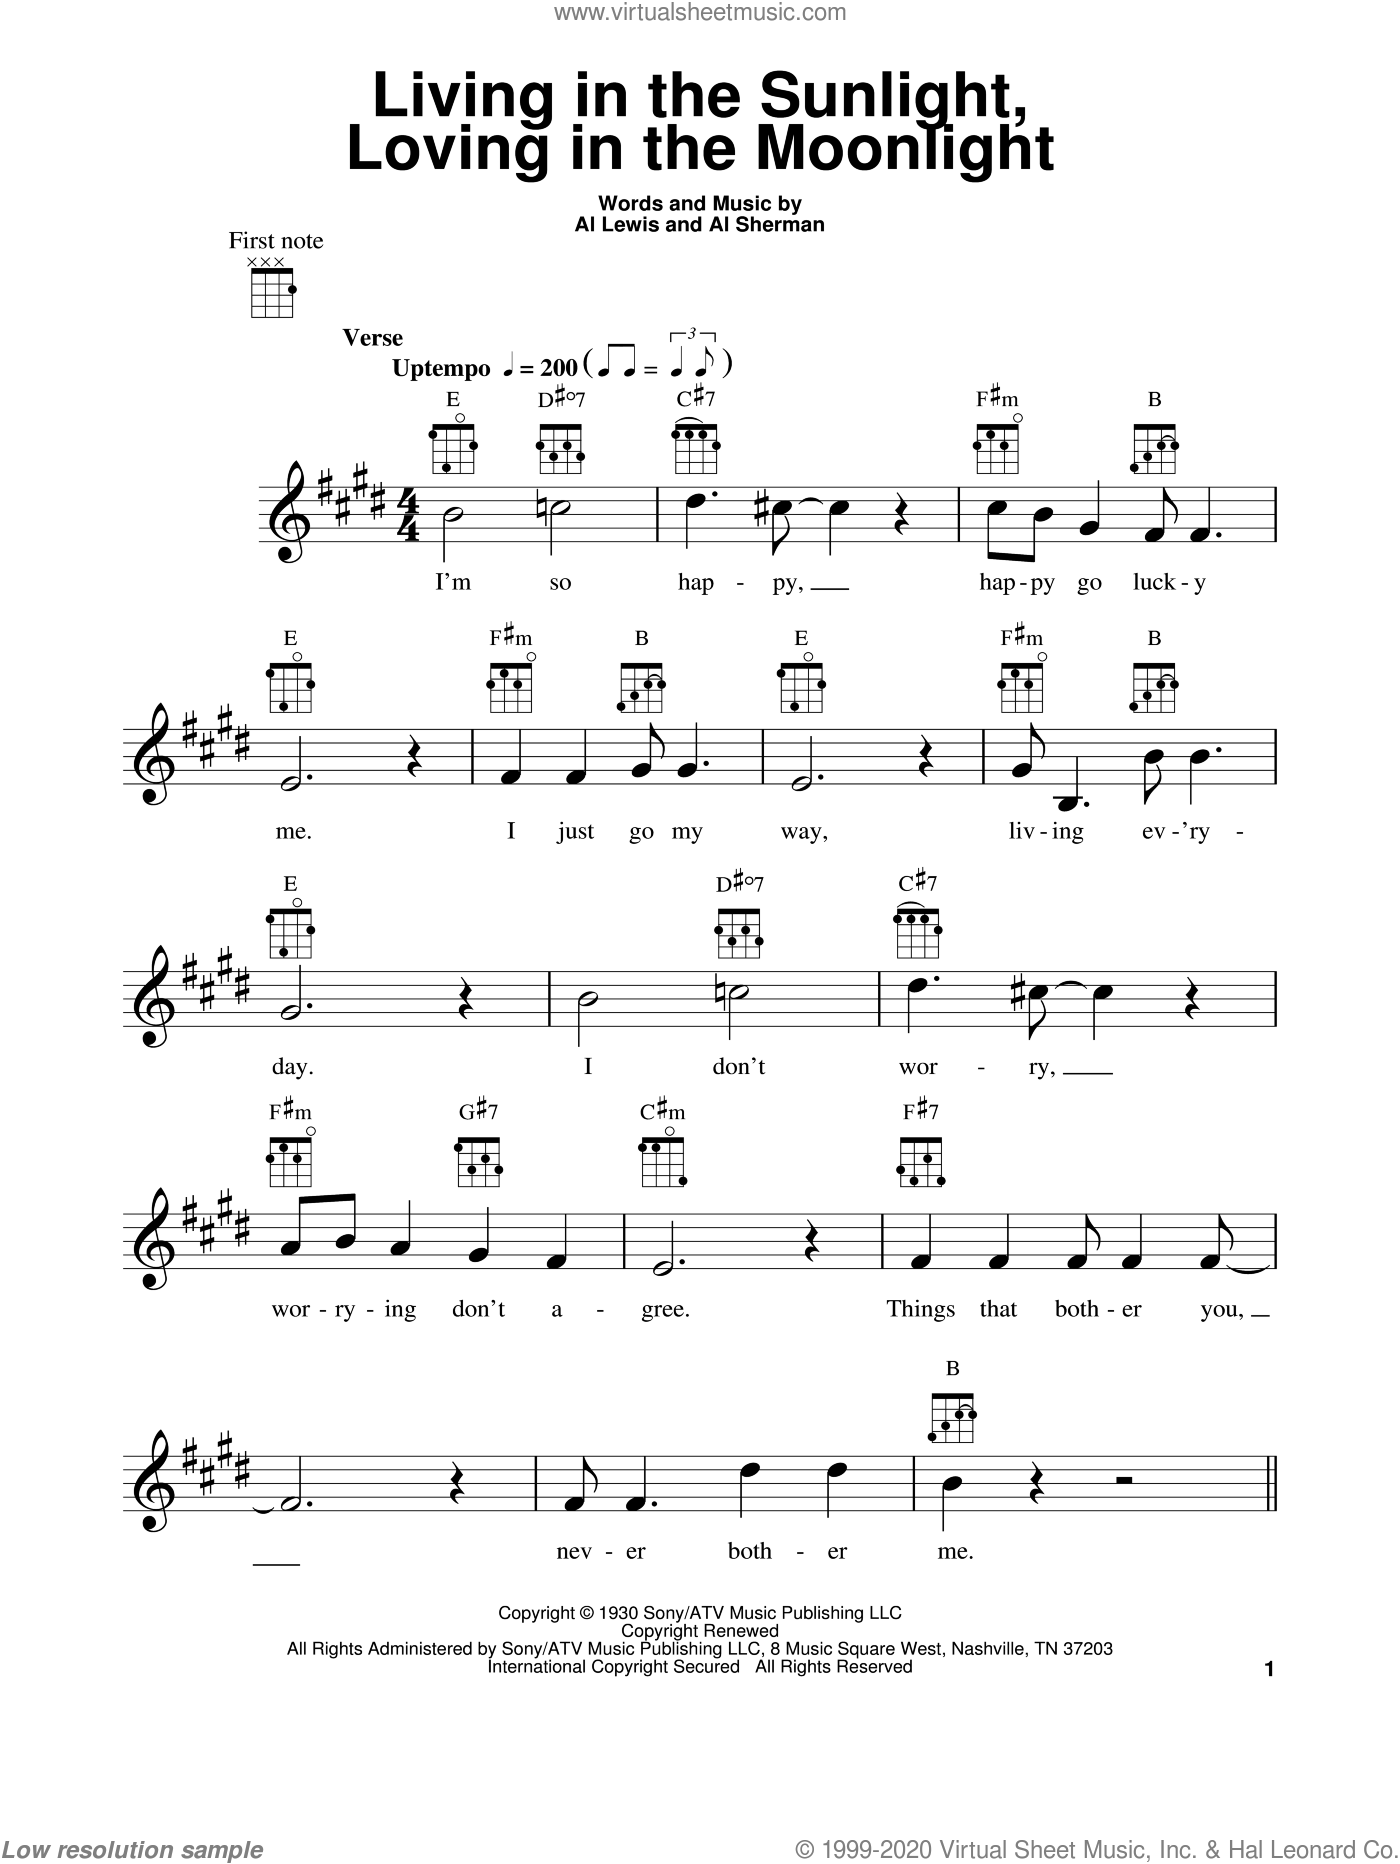 Living In The Sunlight, Loving In The Moonlight sheet music for ukulele by Al Sherman and Al Lewis, intermediate skill level